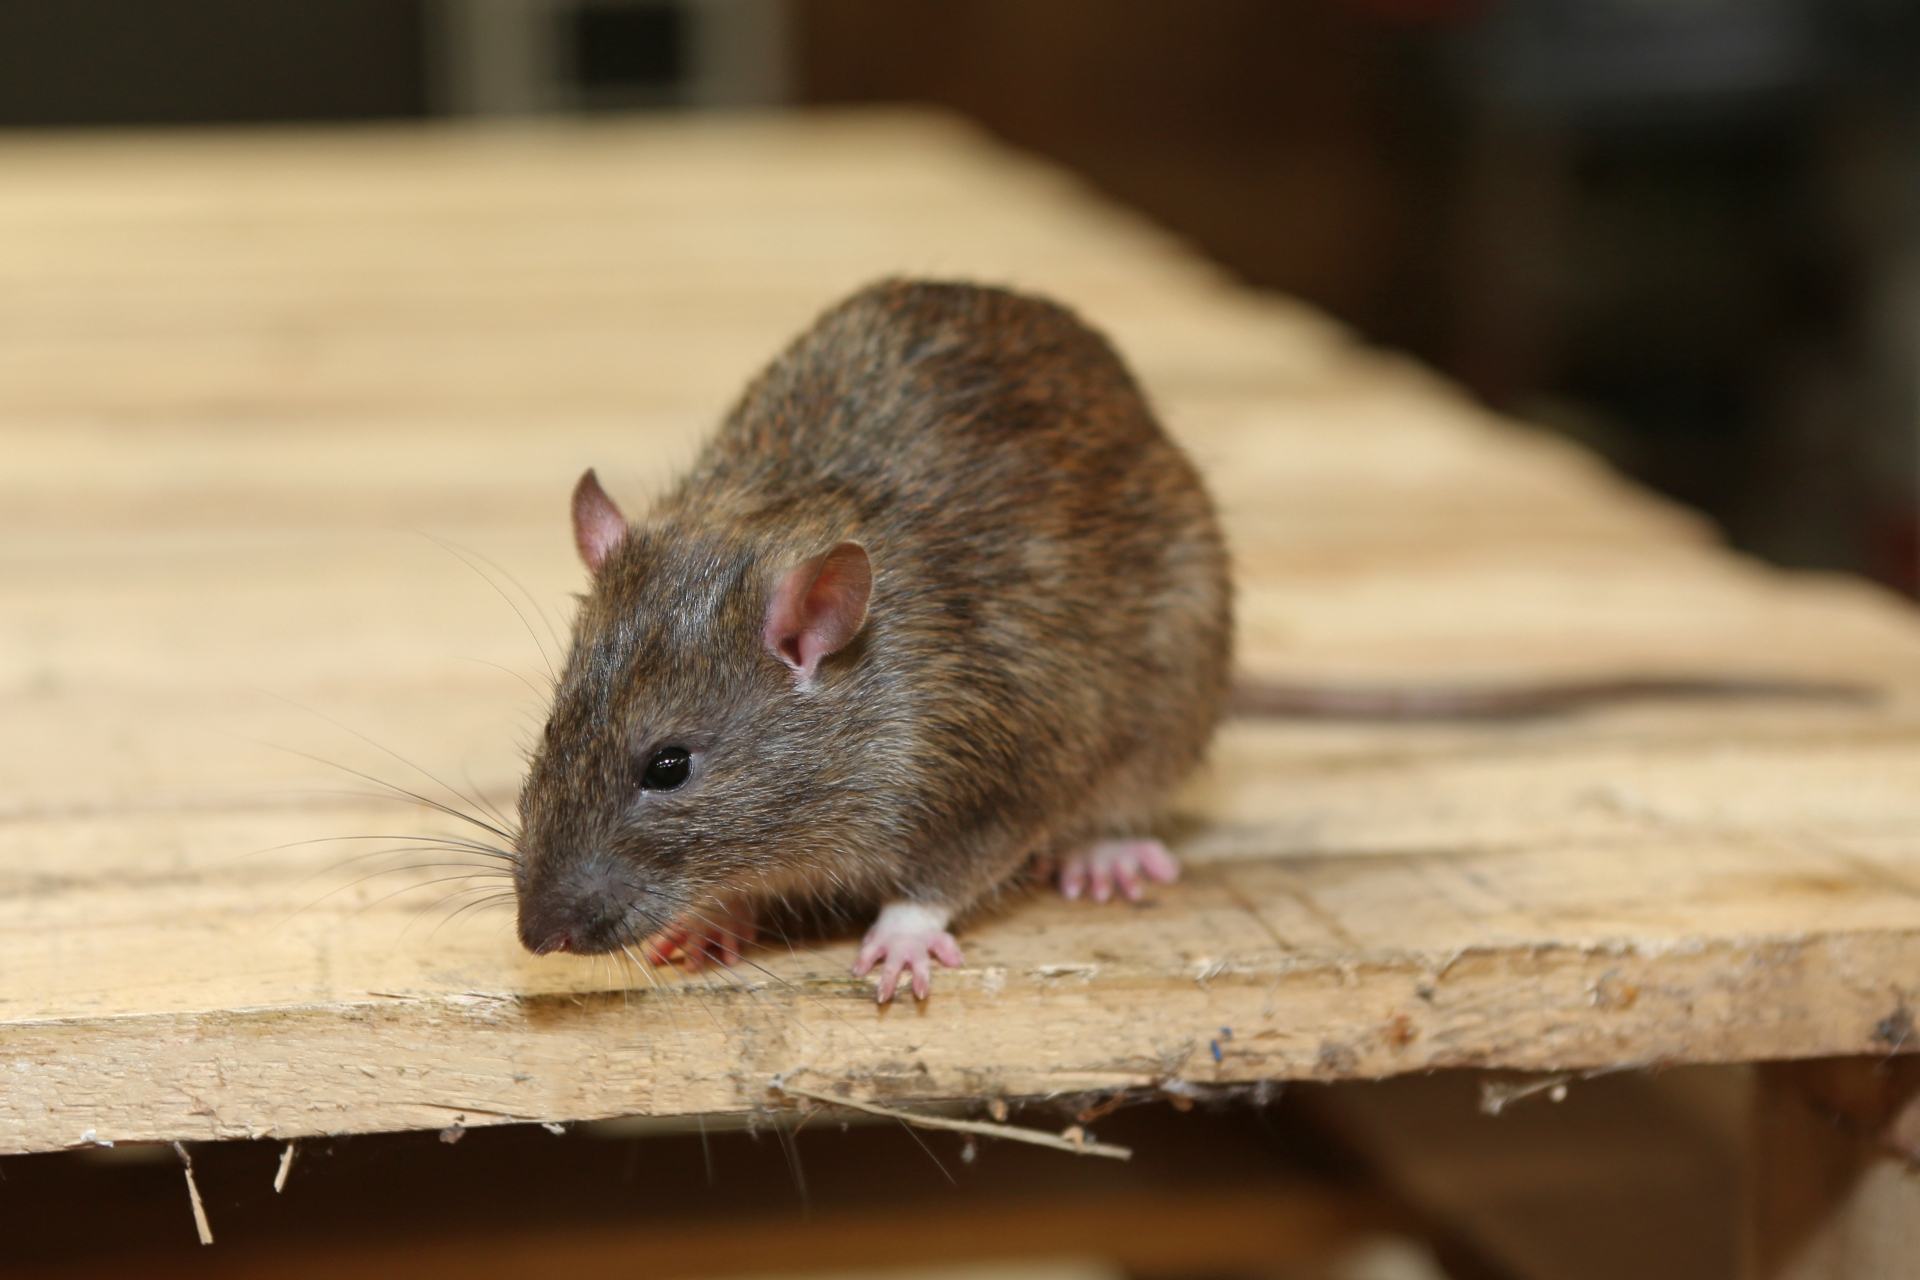 Rat Infestation, Pest Control in New Cross, New Cross Gate, SE14. Call Now 020 8166 9746